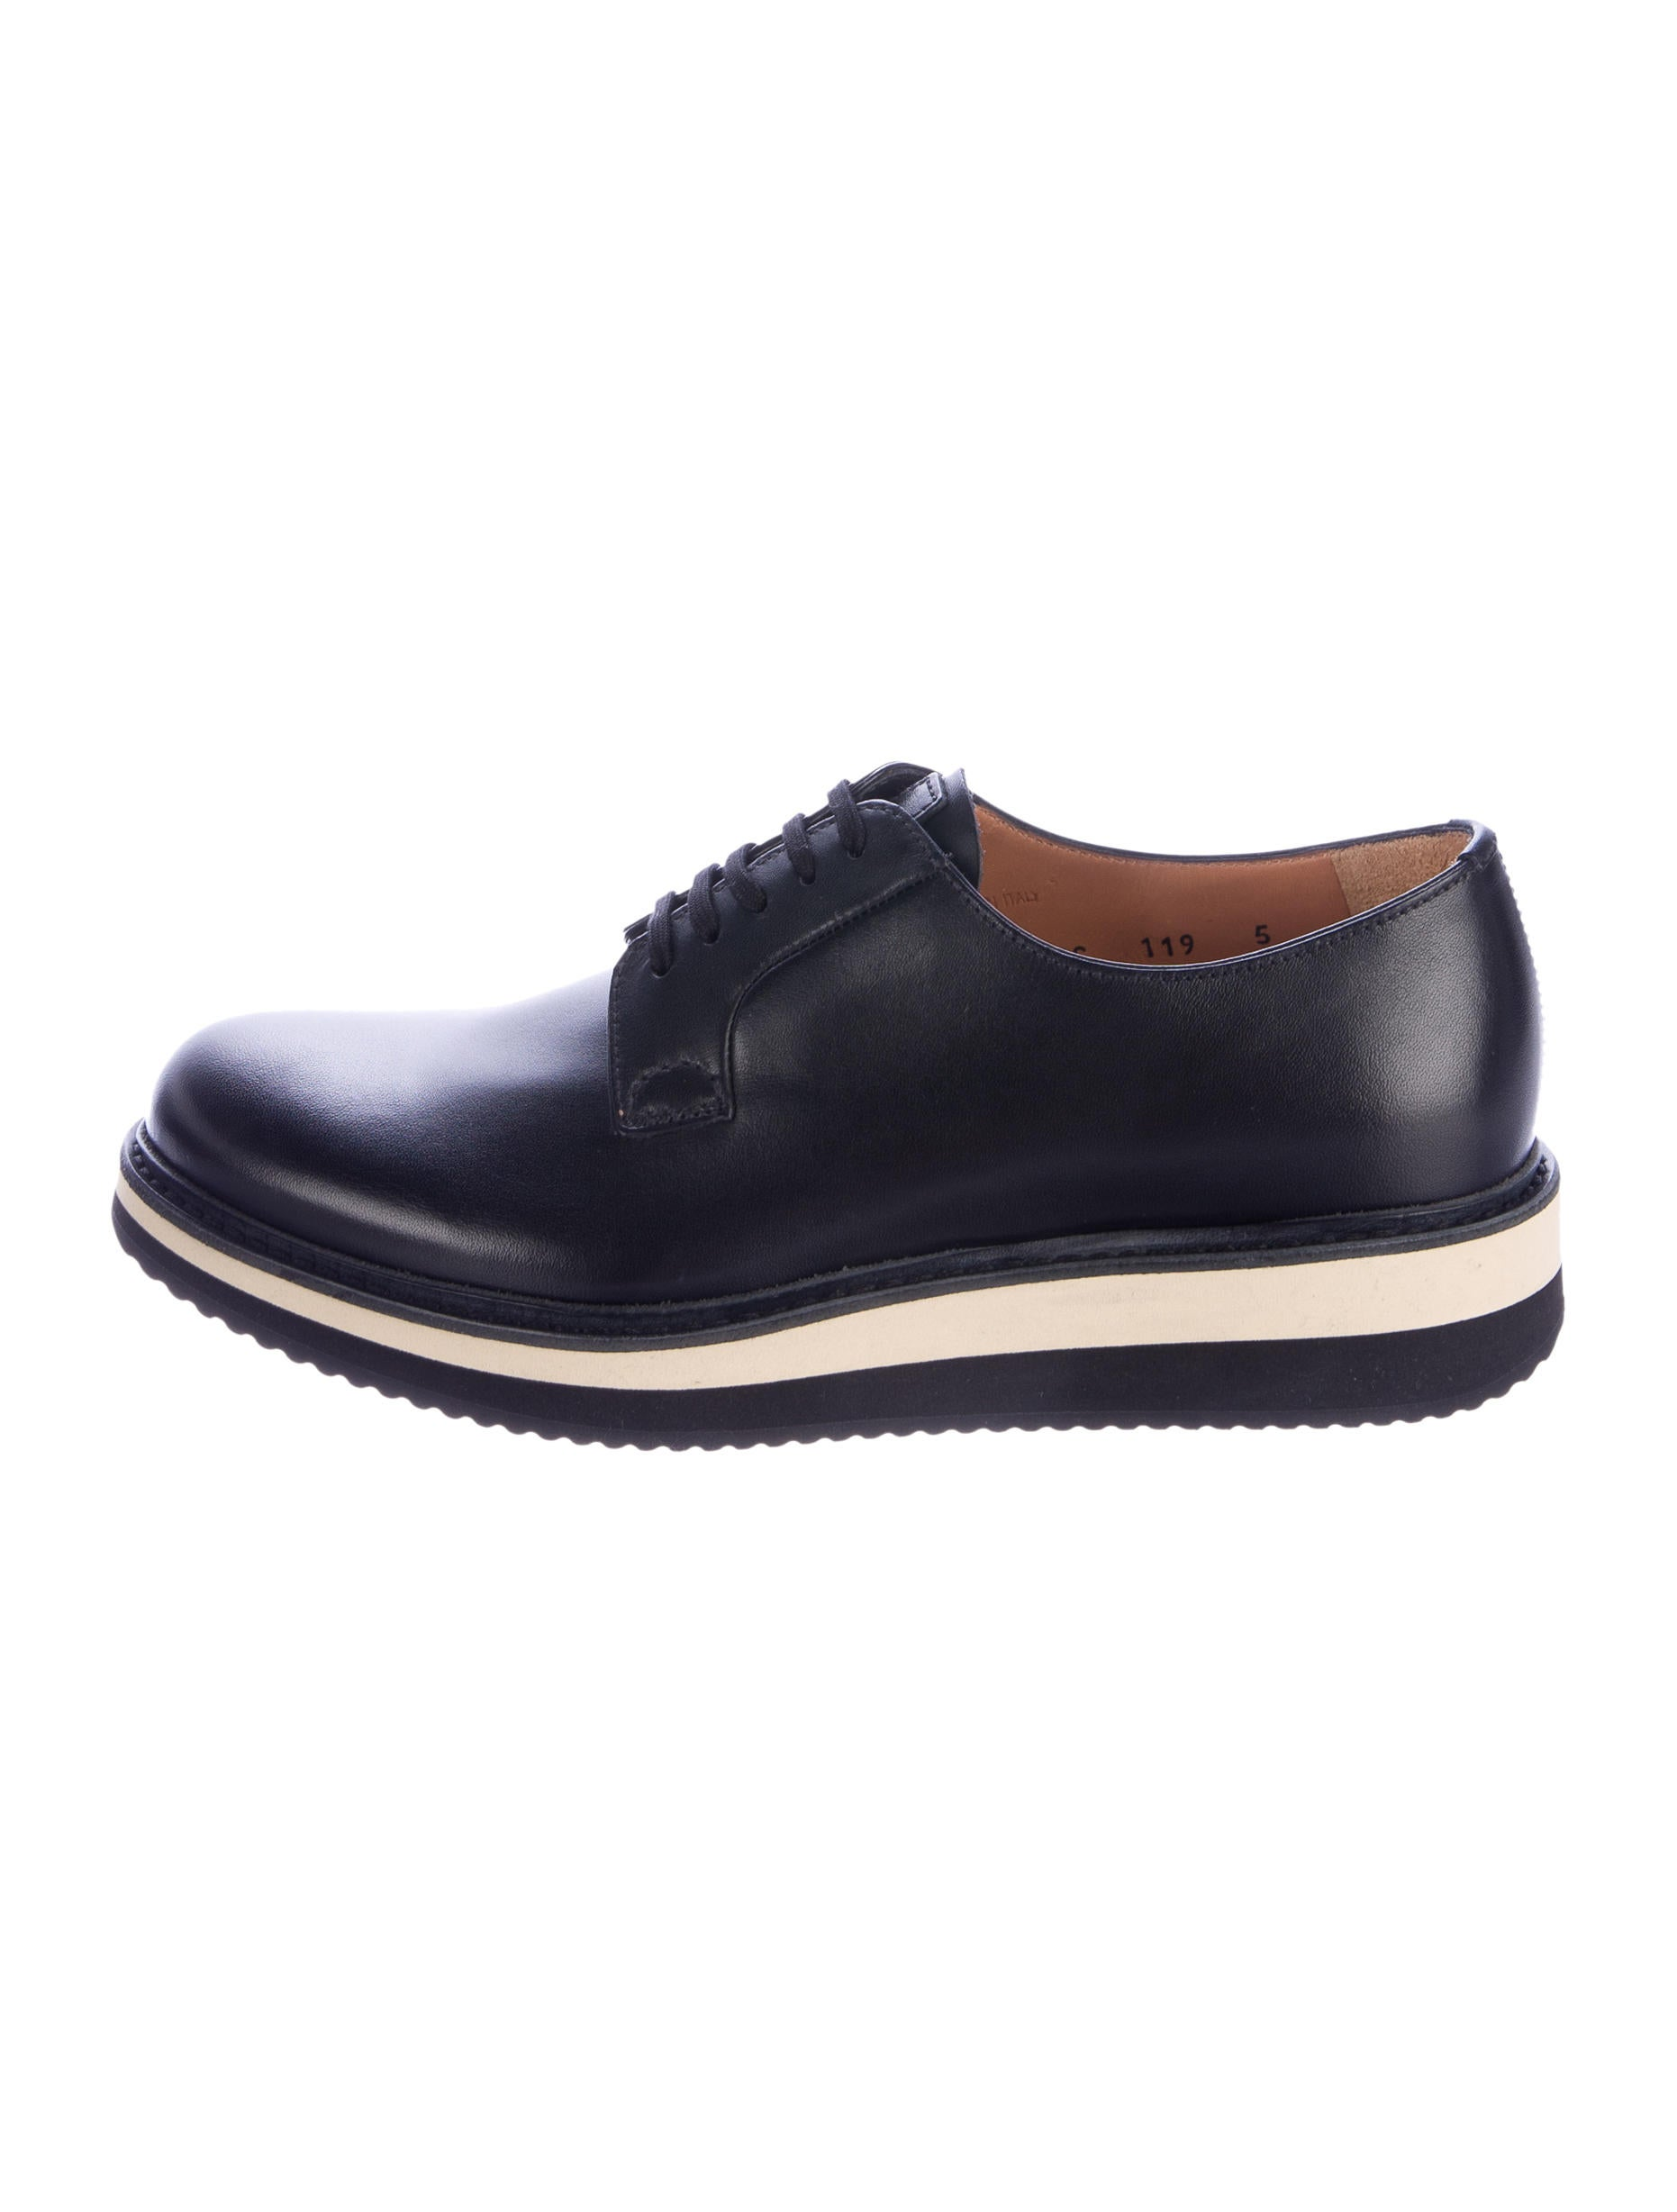 prada platform derby shoes w tags shoes pra152664